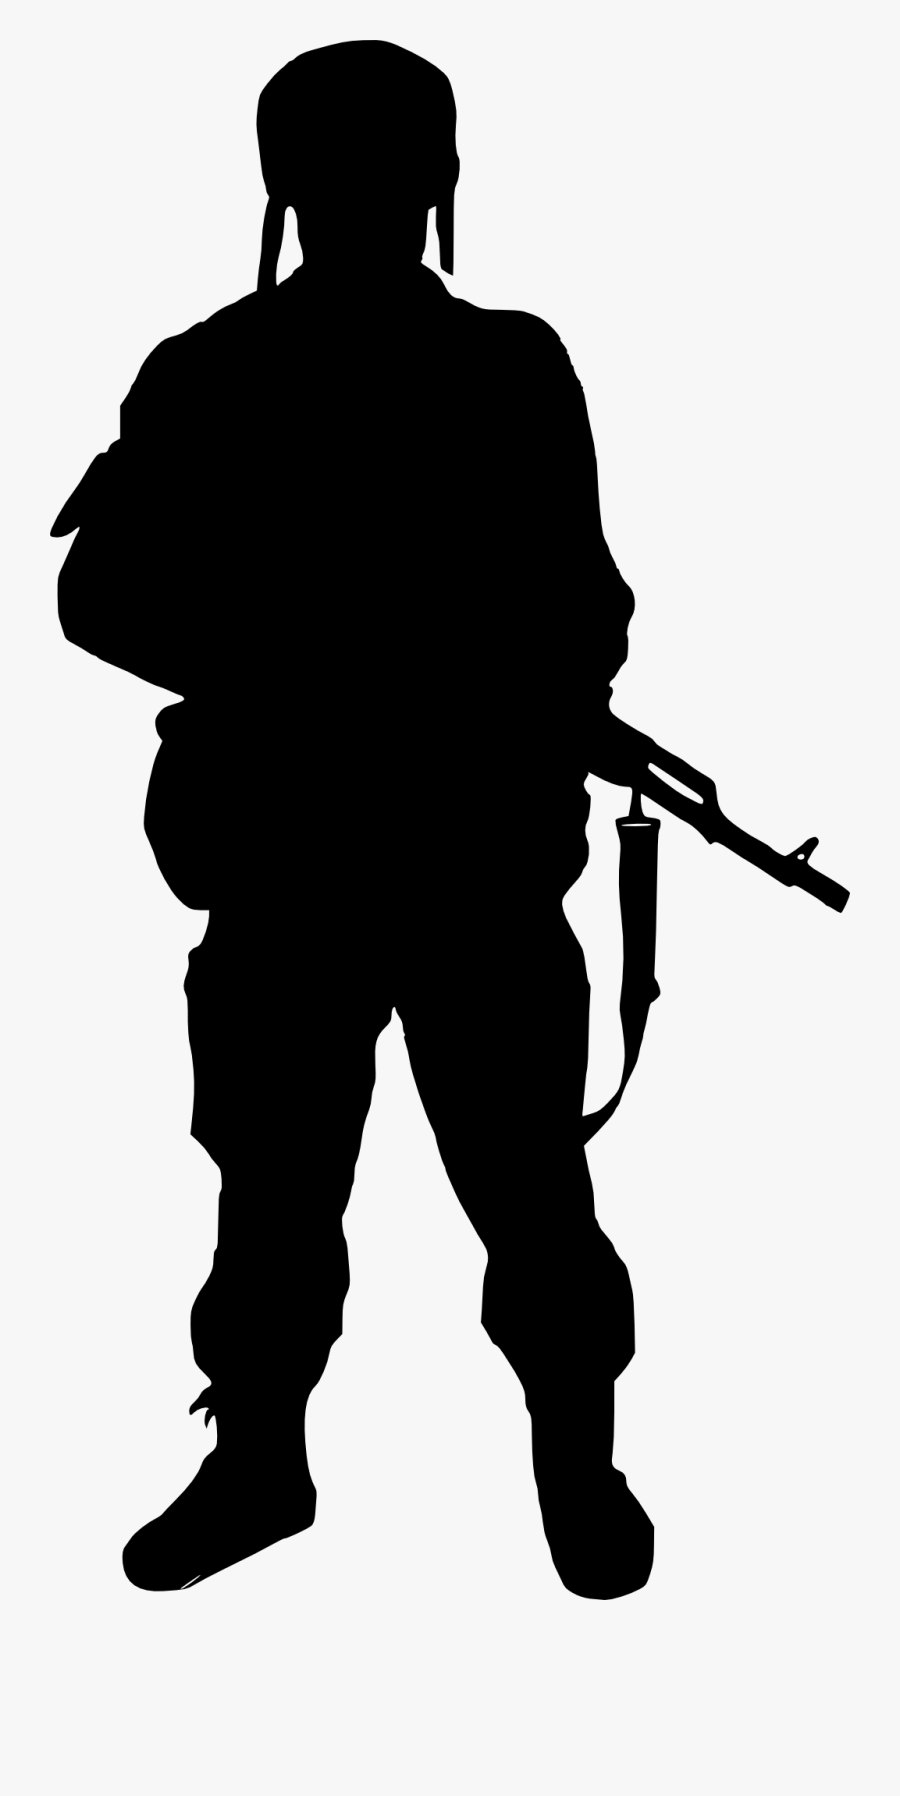 10 Soldier Silhouette.